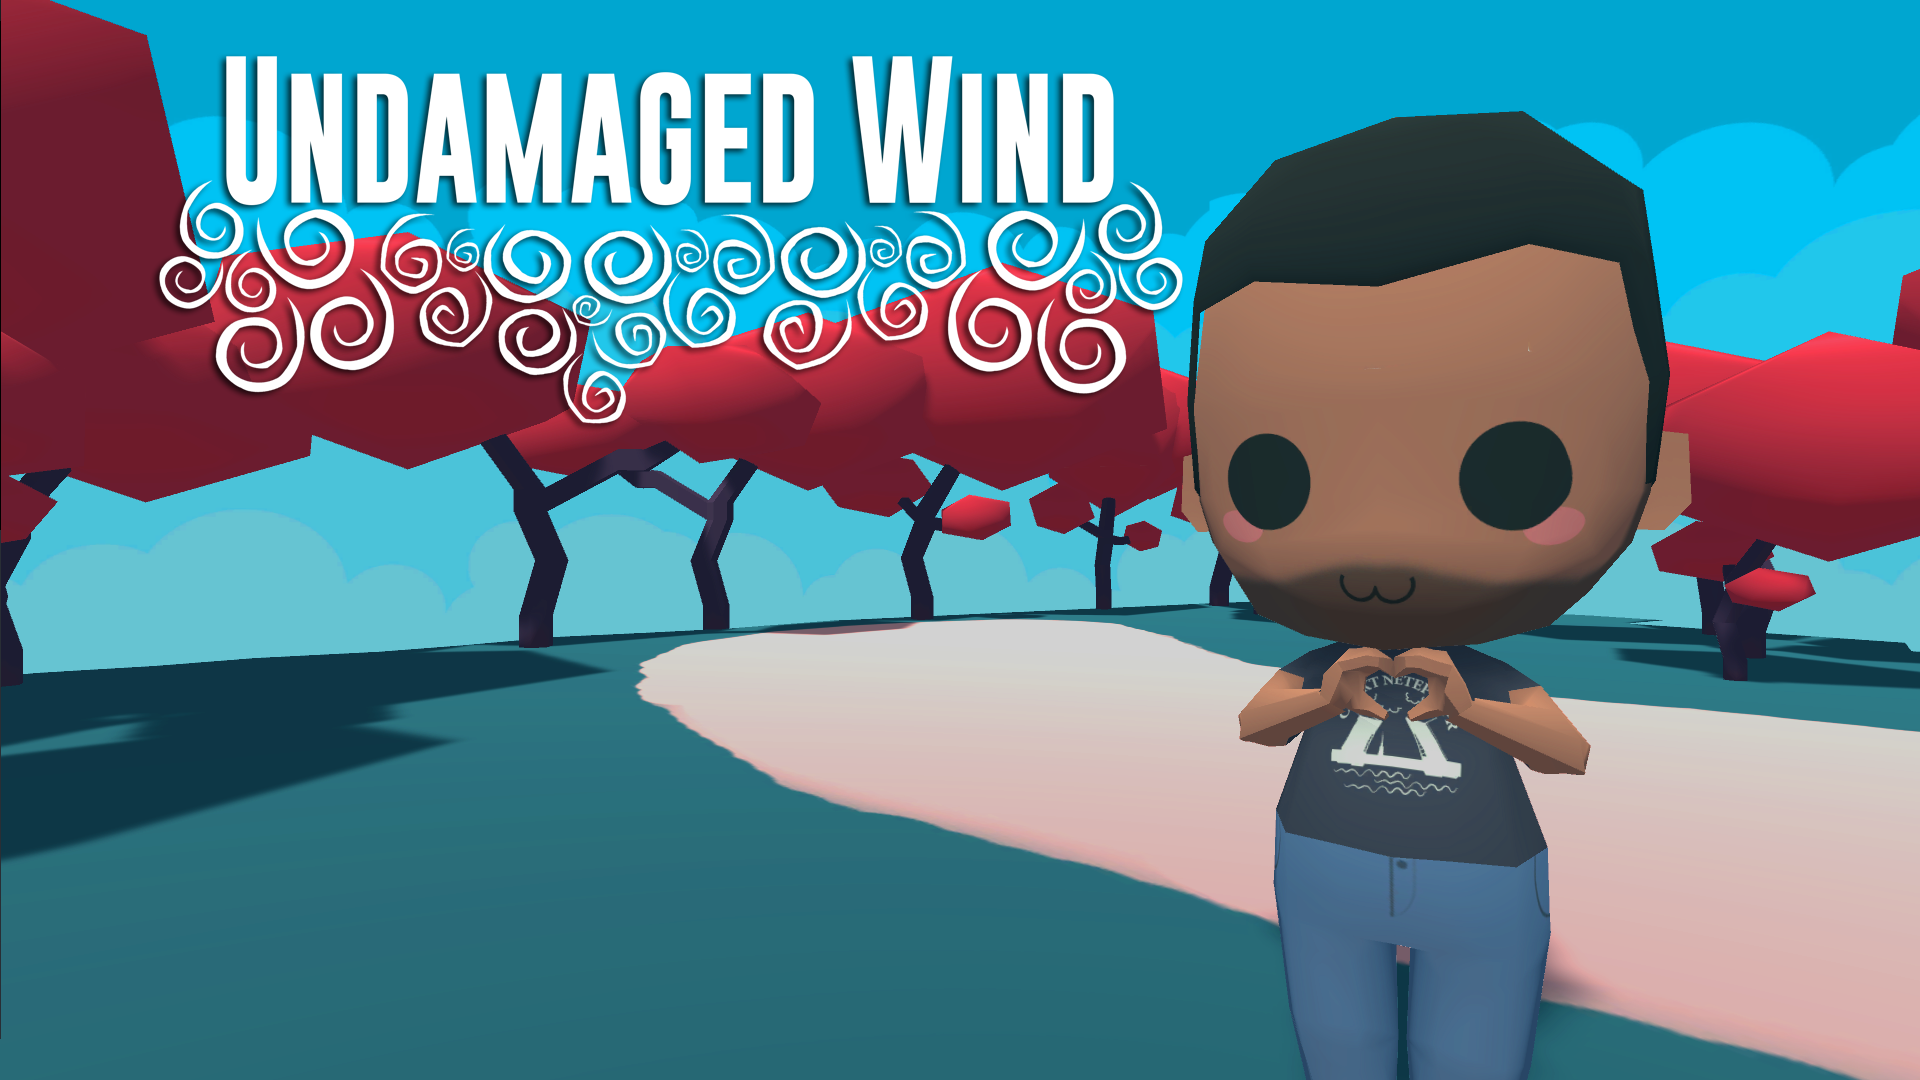 Undamaged Wind